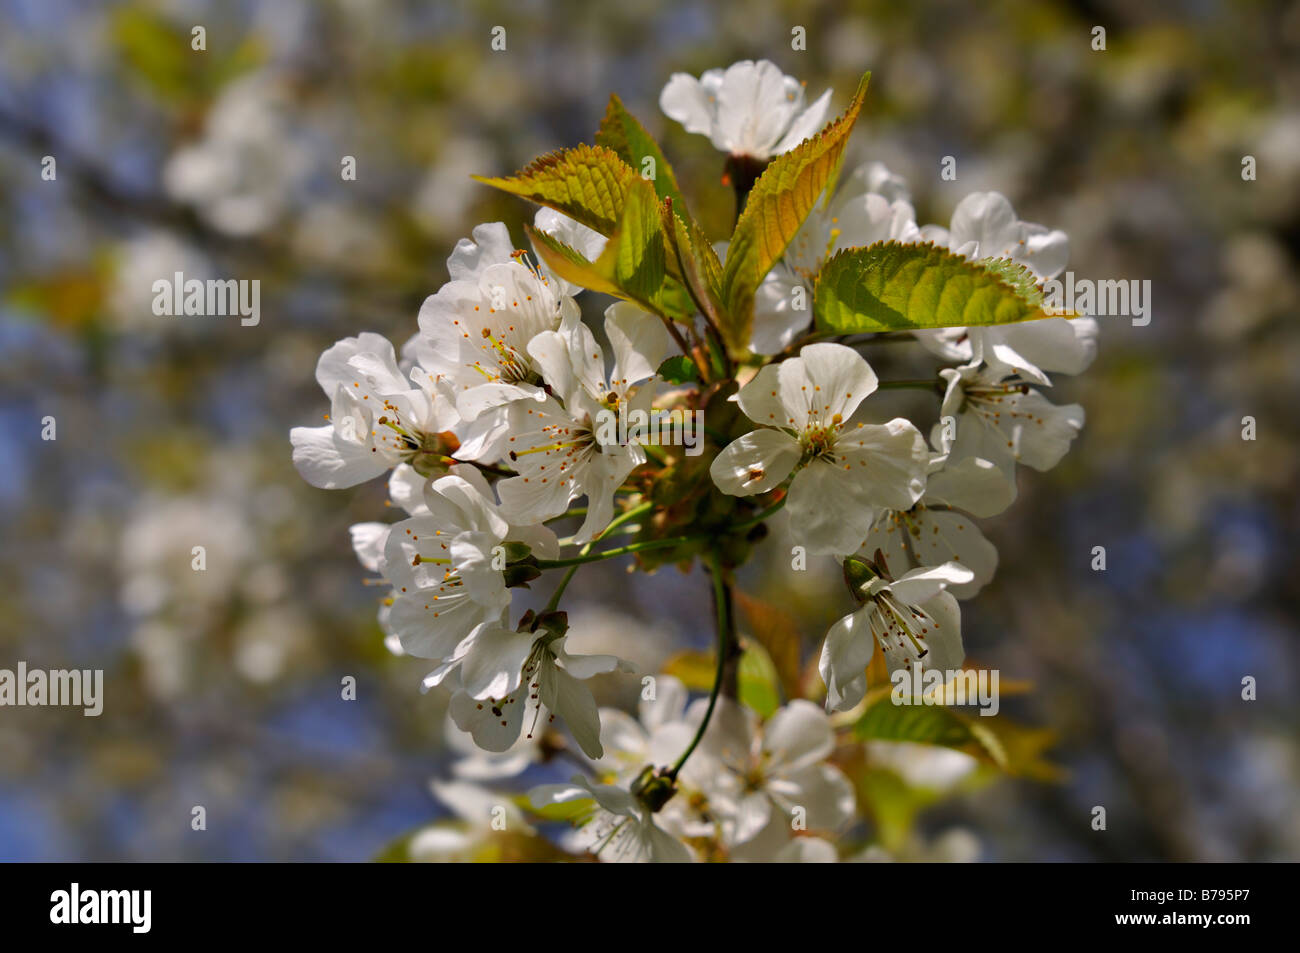 Wild cherry or gean blossoms in a Perthshire garden Scotland UK - Stock Image